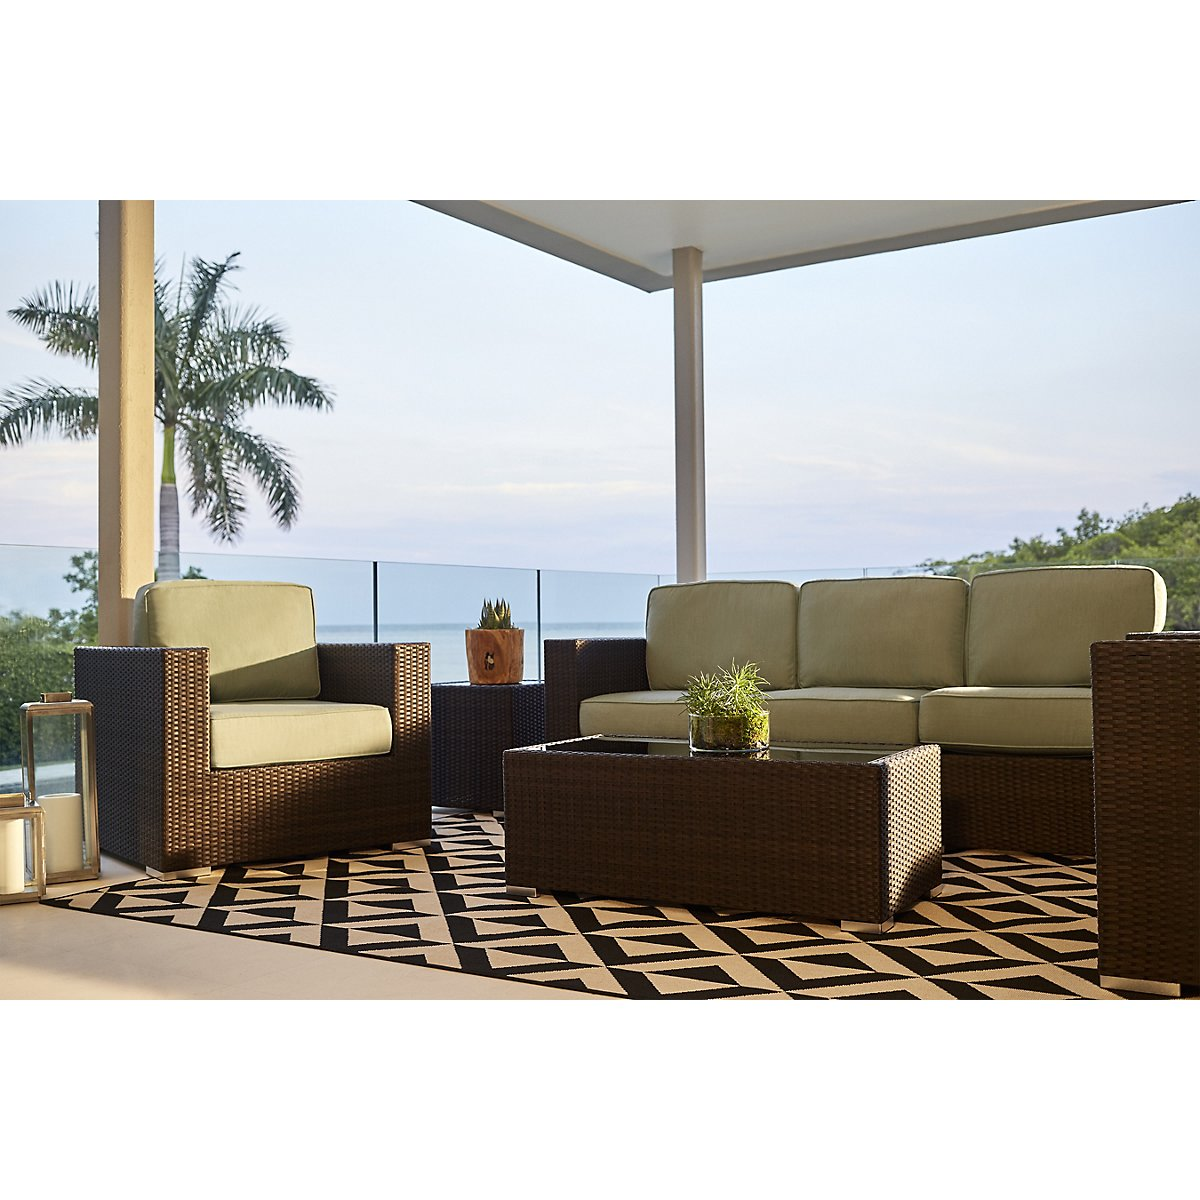 City Furniture: Fina Teal Outdoor Living Room Set on Outdoor Living Room Set id=34620